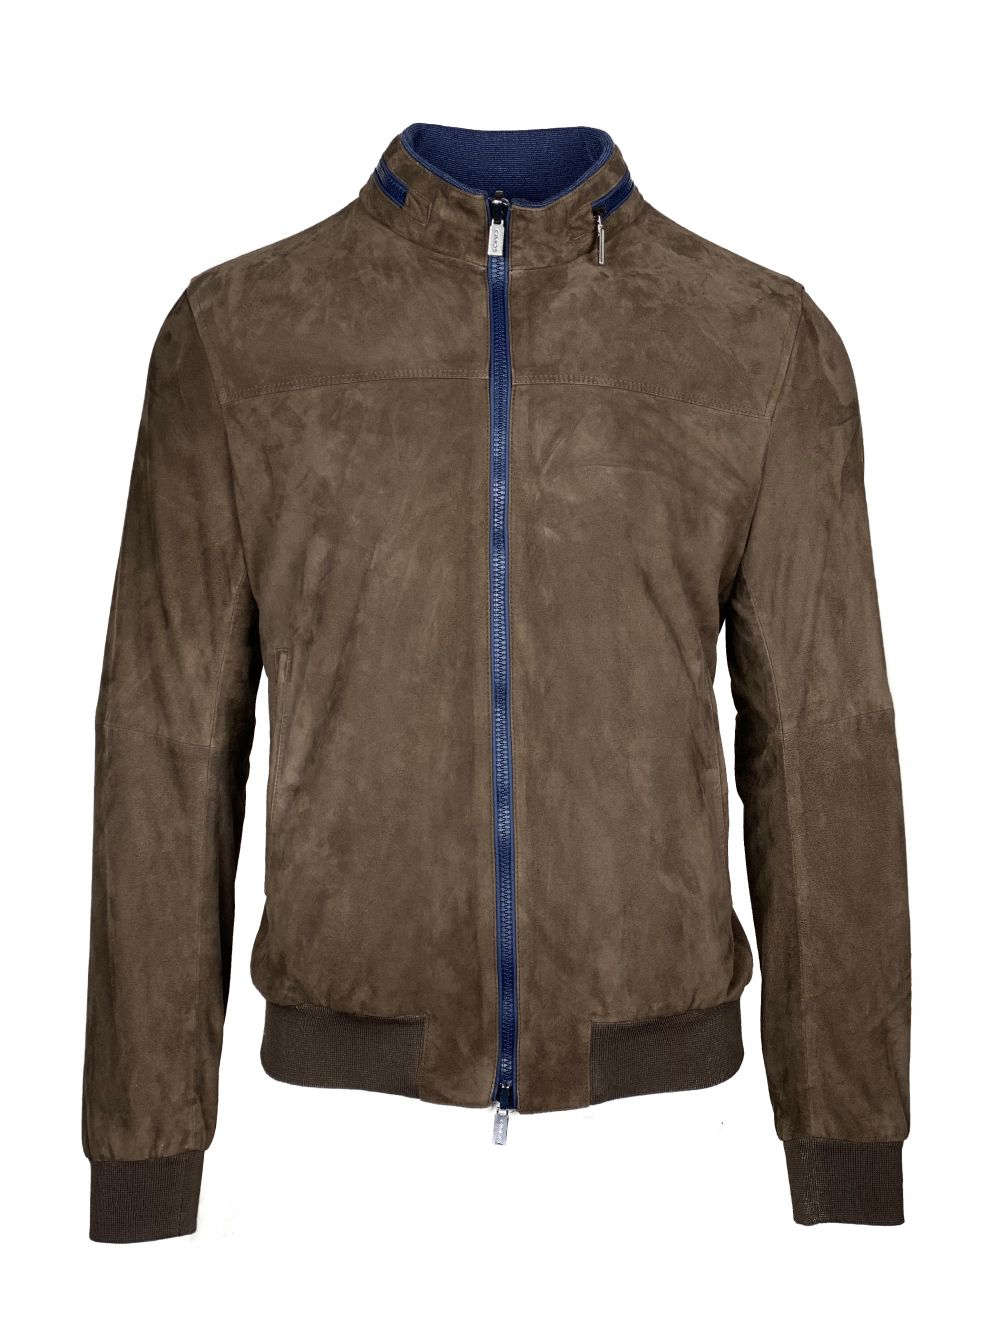 GIMO'S Reversible Leather Jacket - Brown